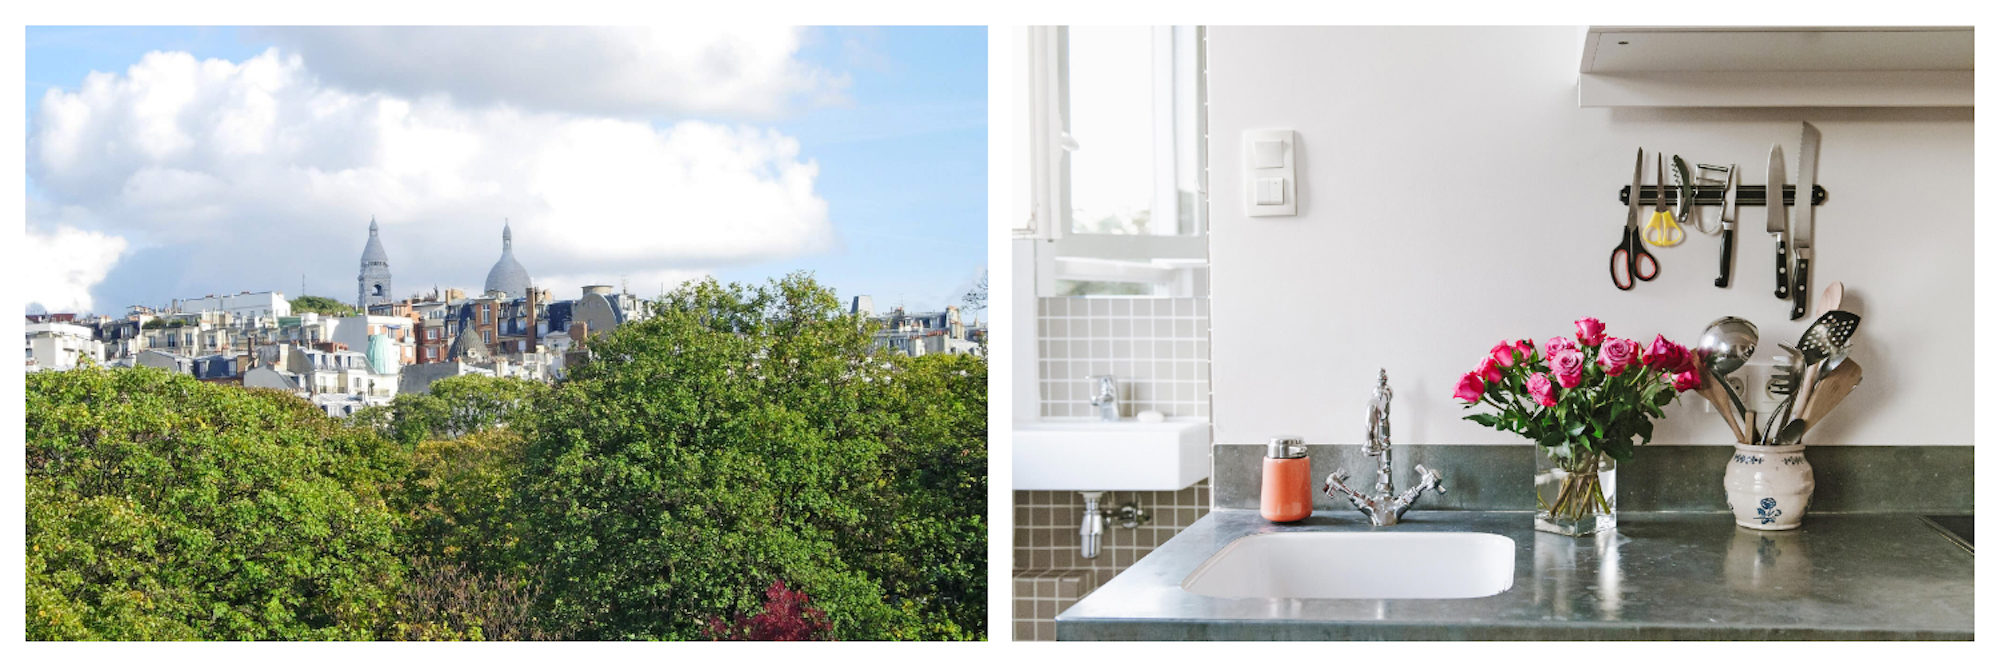 Beautiful Paris spots then and now, including a canopy of trees with the Sacré Coeur Basilica peeping out the top (left). A bunch of pink tulips on the counter of a Paris rental apartment (right).